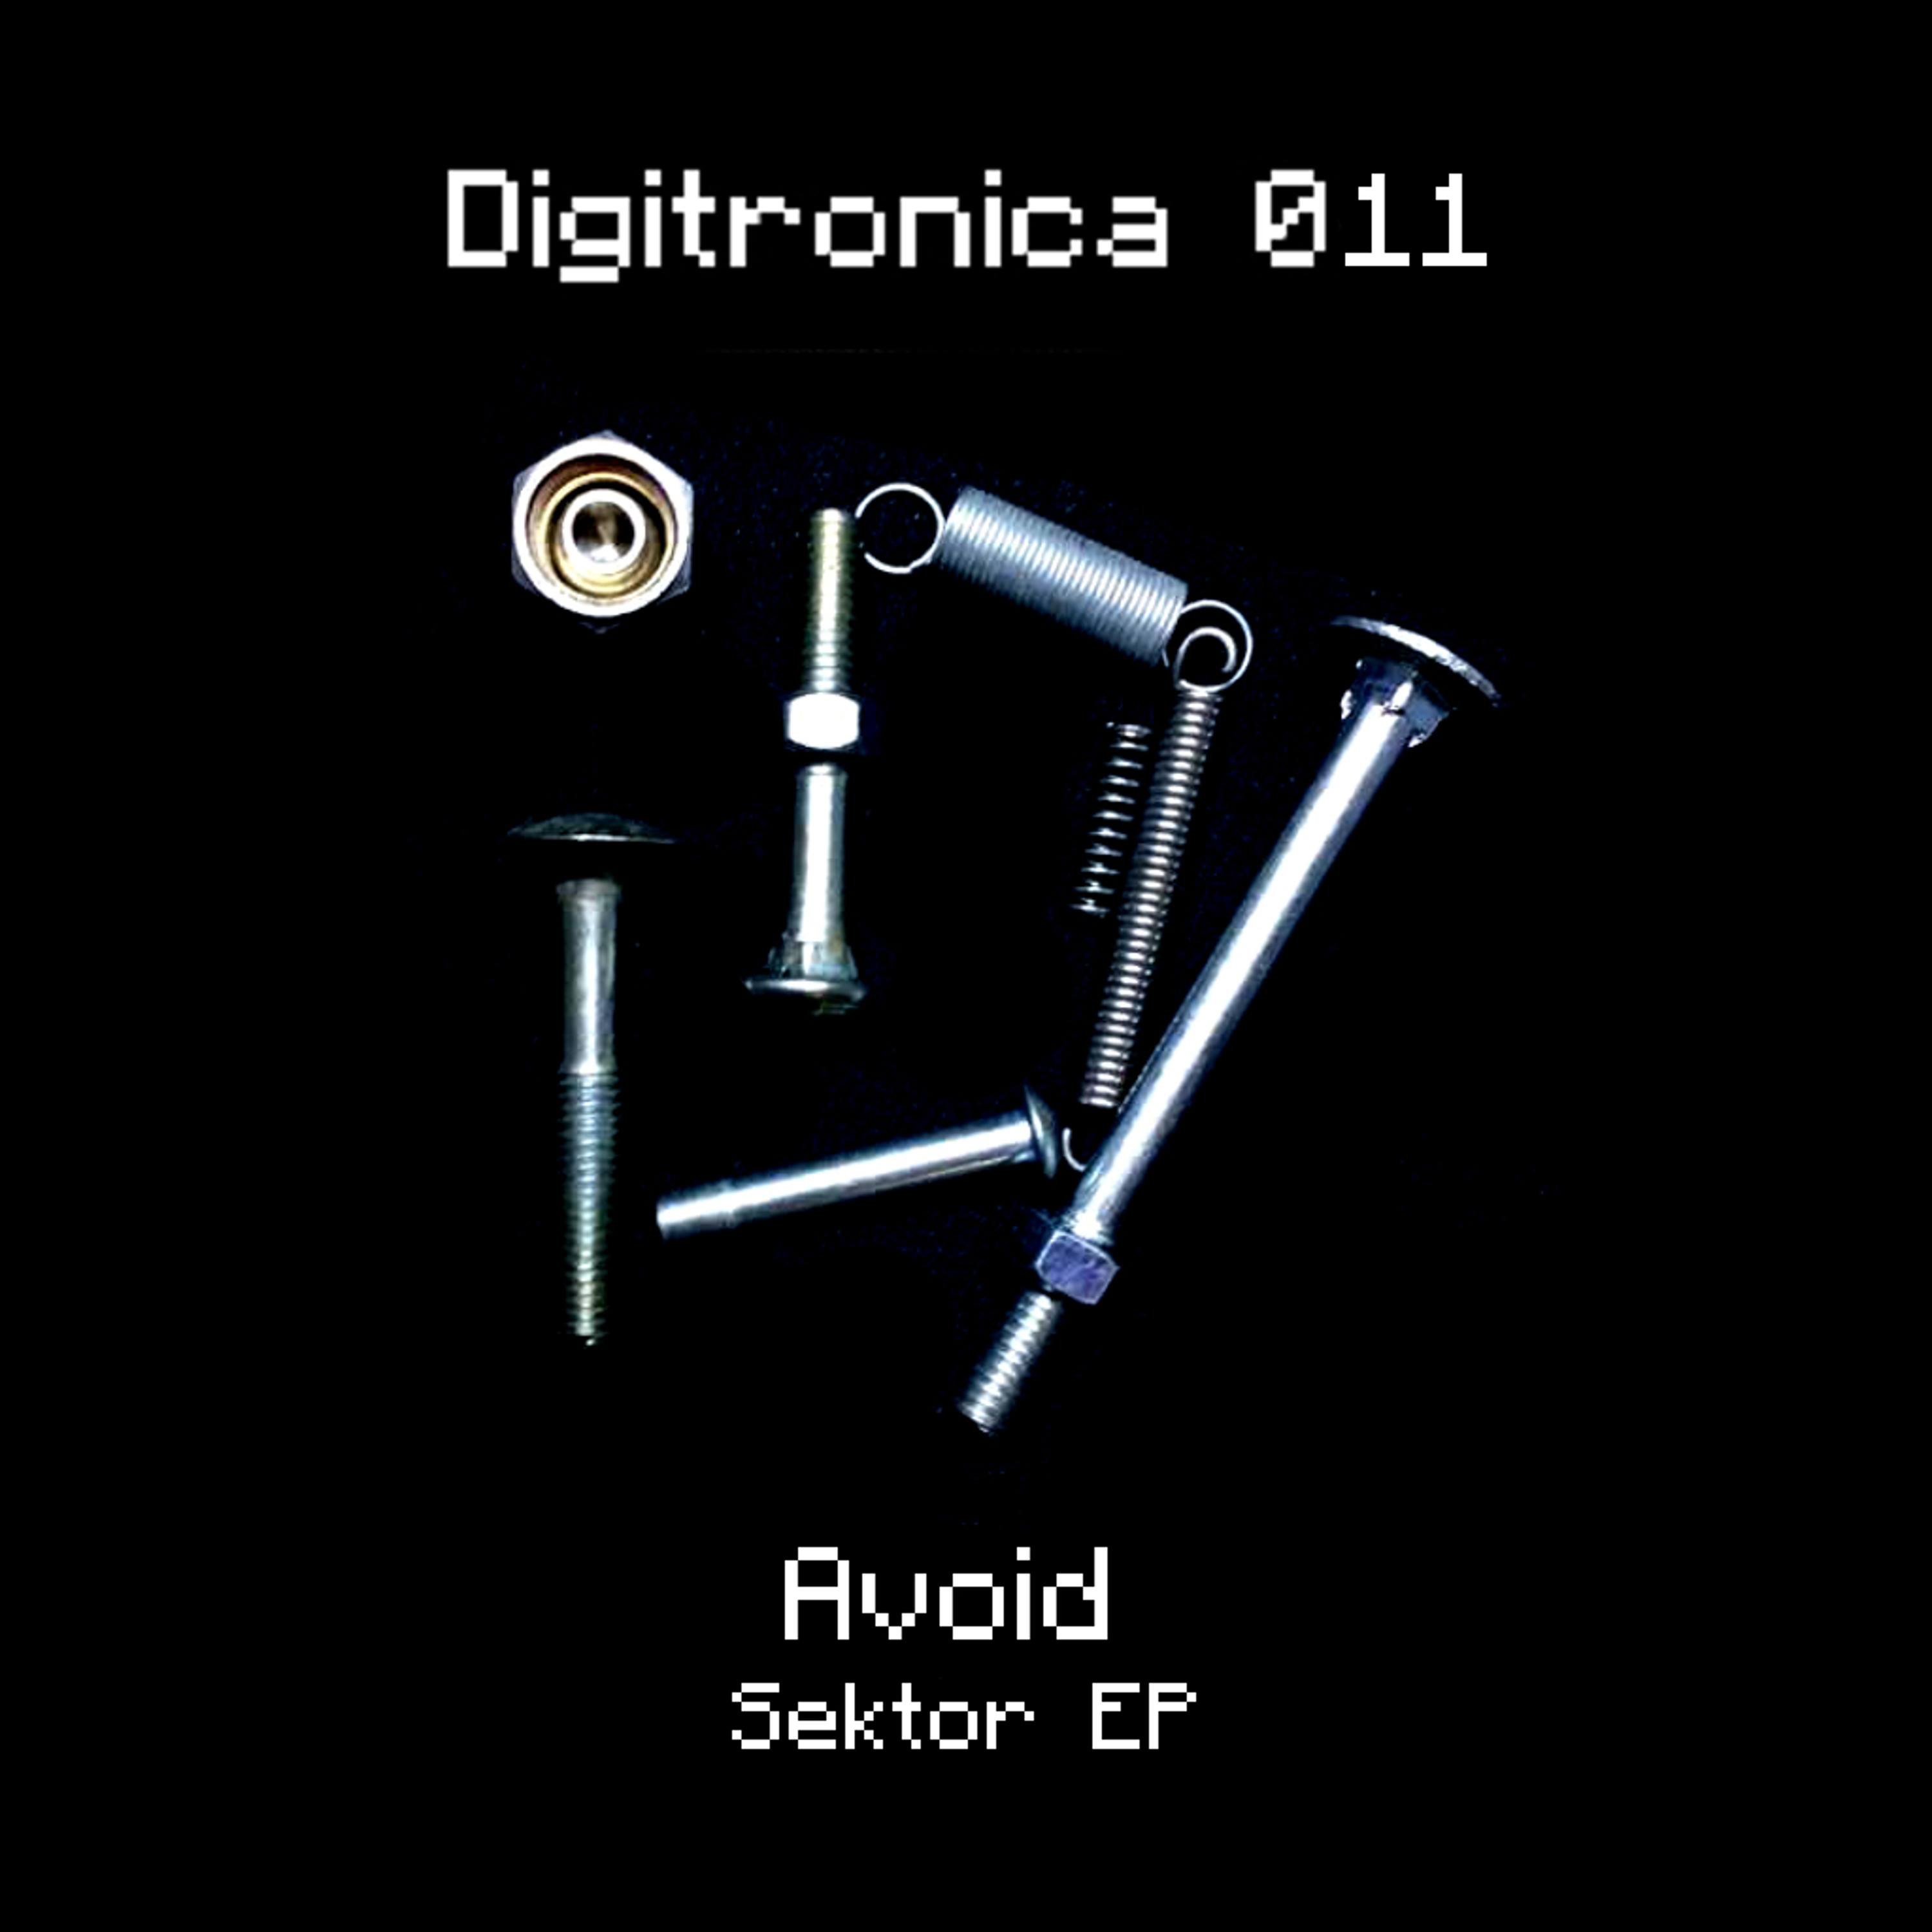 Avoid - Sektor EP